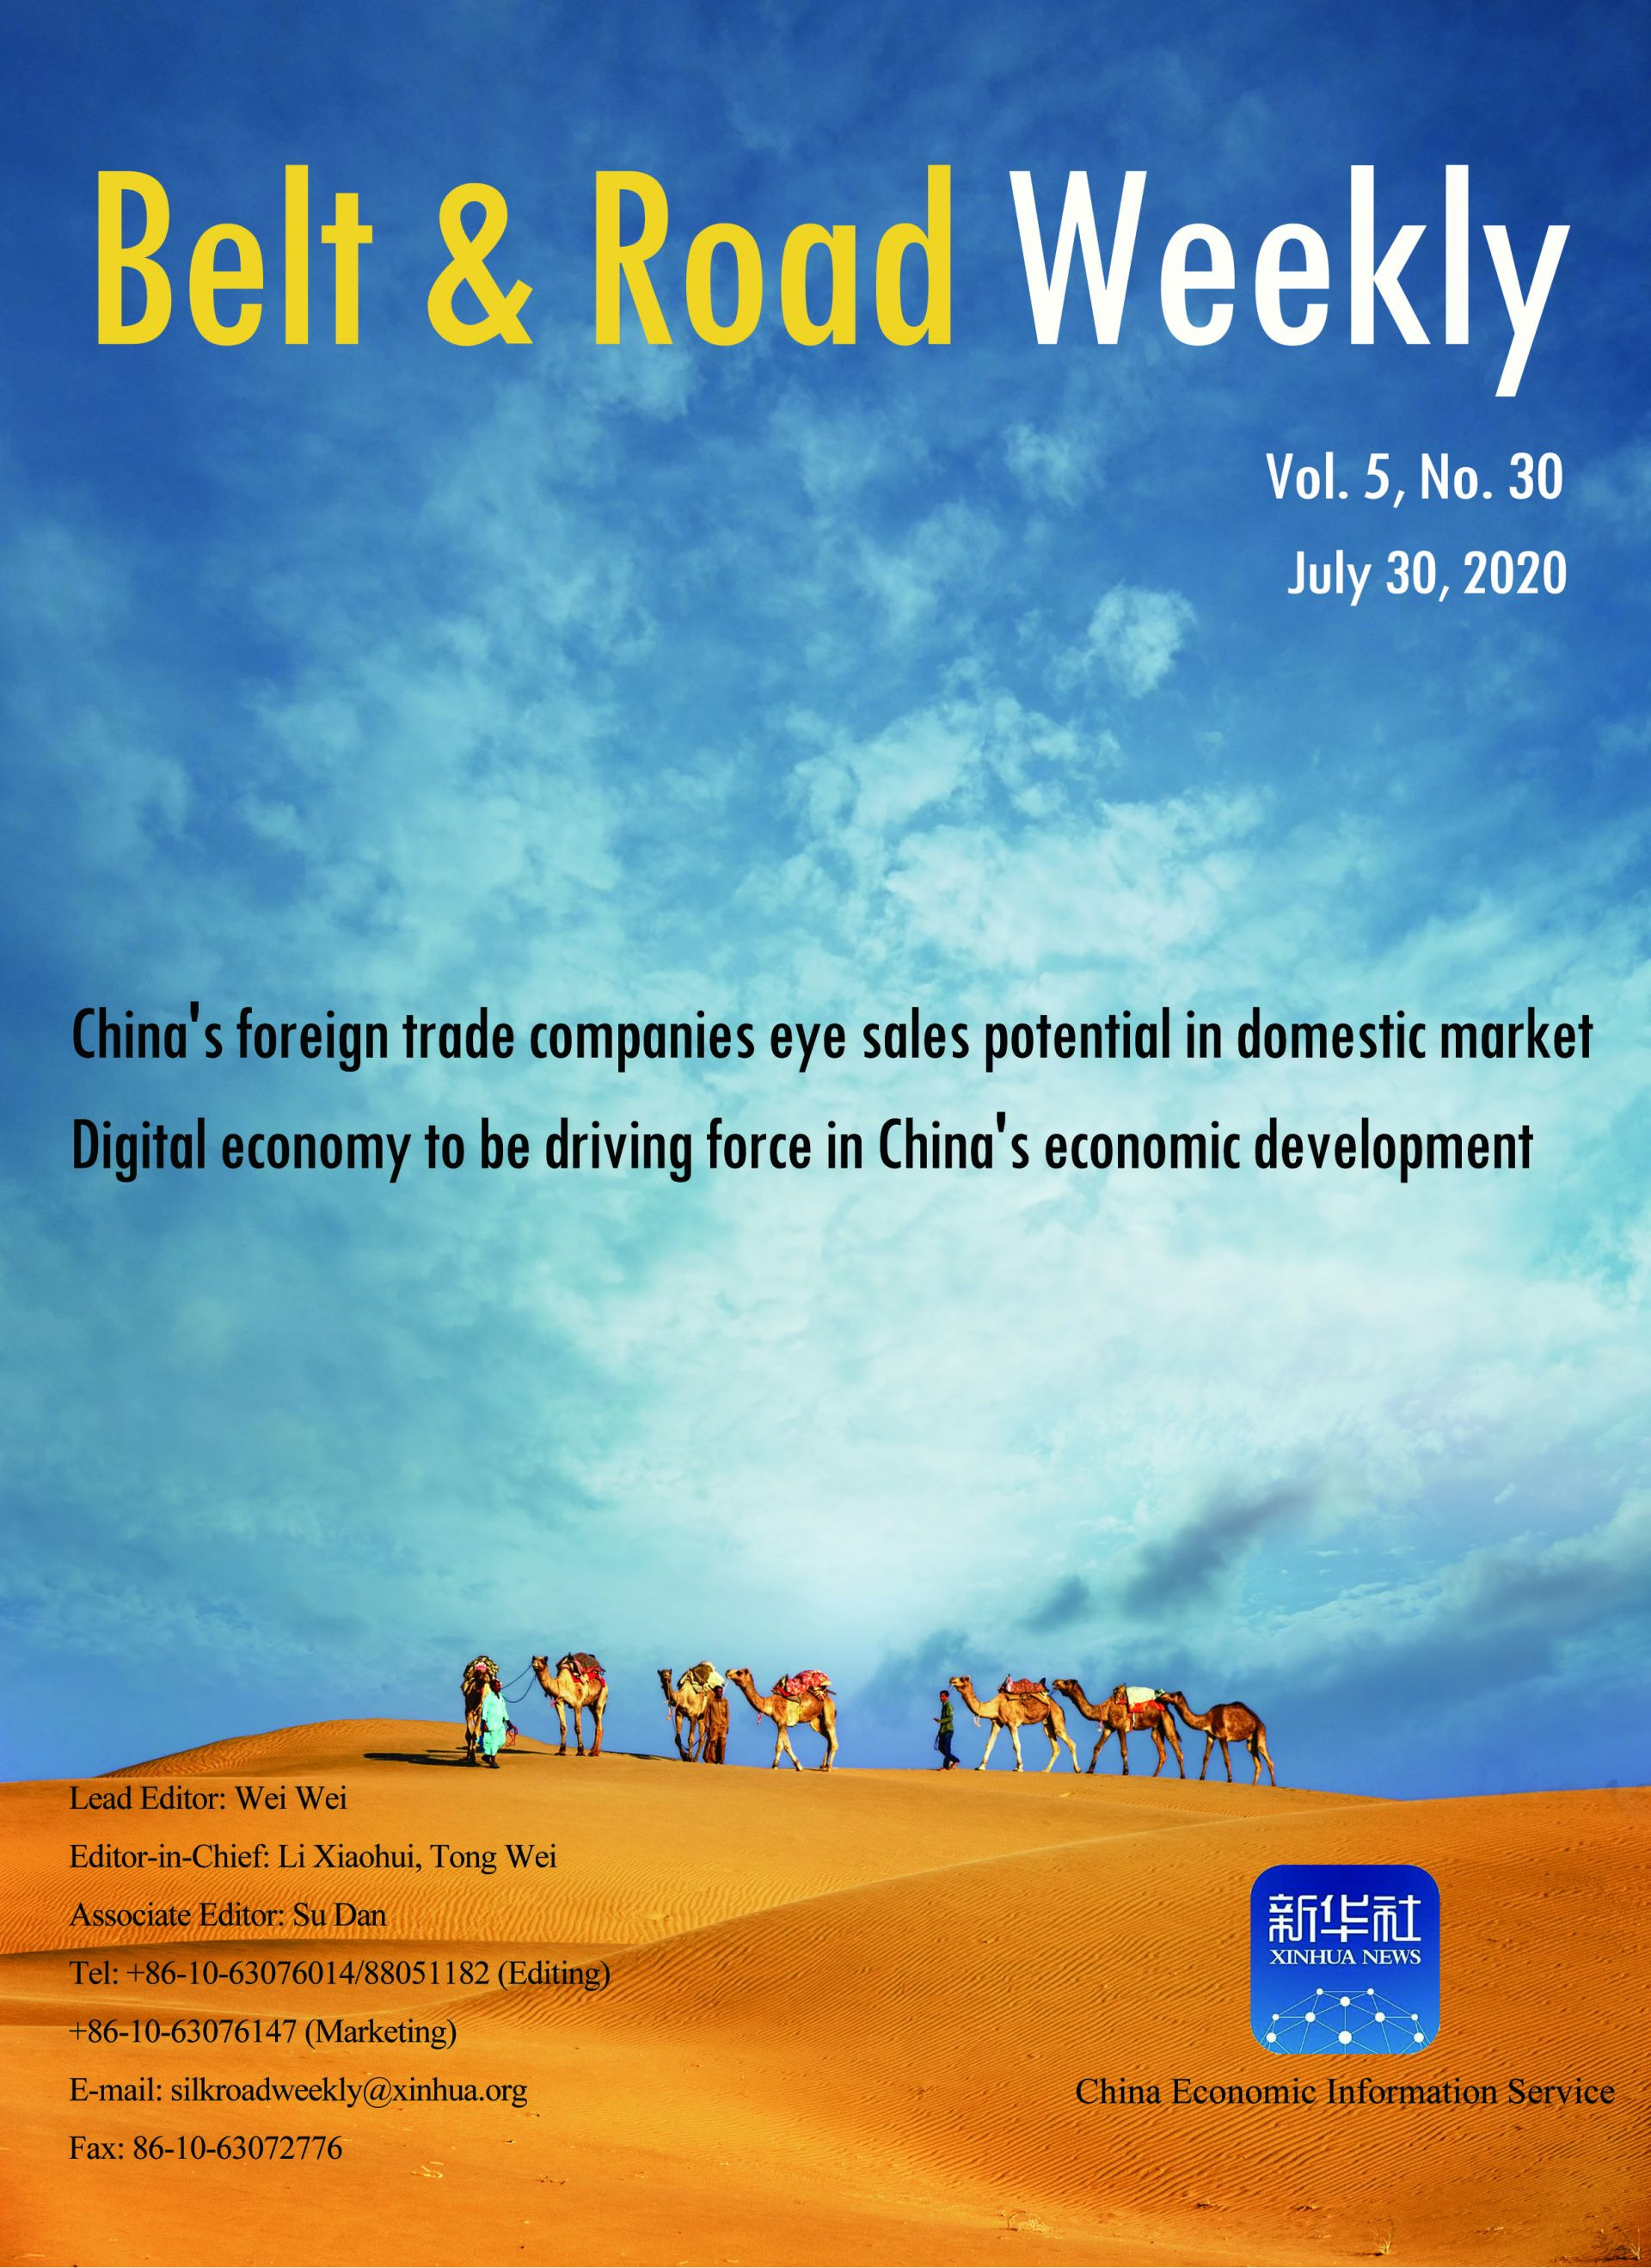 Belt and Road Weekly Vol. 5 No. 30